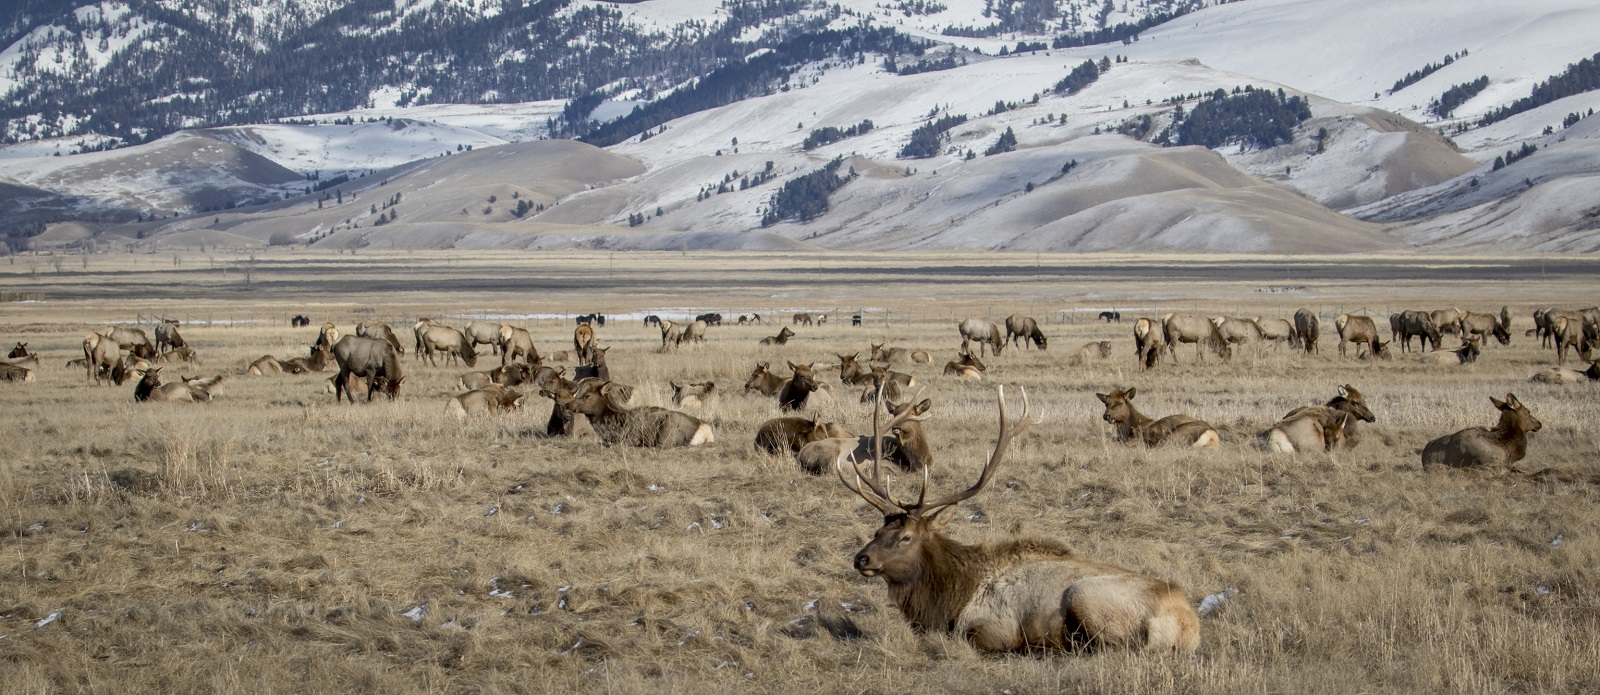 National Elk Refuge near Jackson Hole.istock.com/ SBTheGreenMan